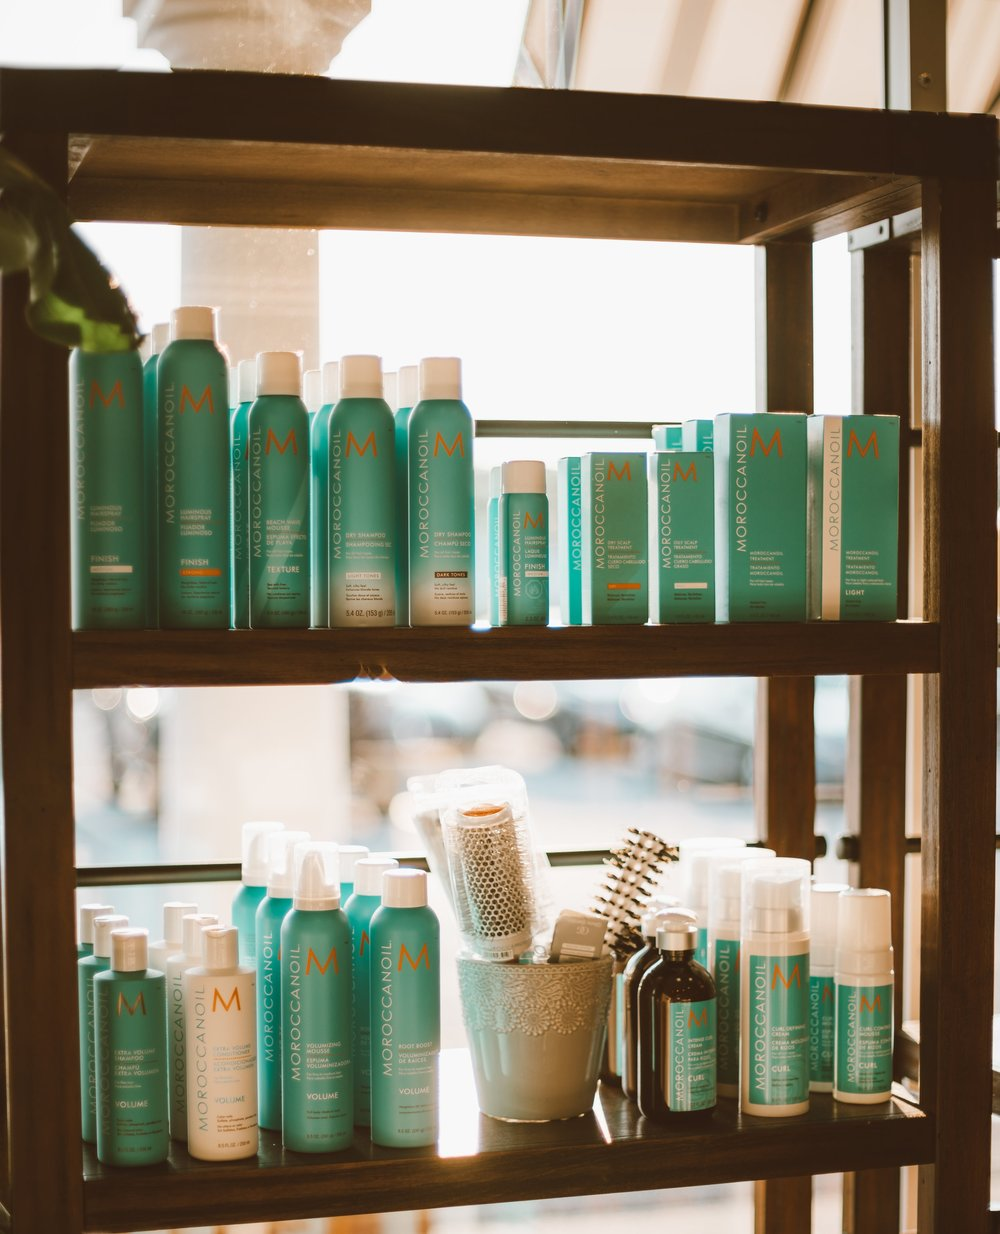 Moroccanoil - What began as a single revolutionary product, pioneered a new category in the beauty industry, and has grown into a full line of hair and body products, all infused with nourishing antioxidant-rich argan oil. As Moroccanoil has grown the goal has remained unchanged—to empower beautiful transformations and create products that inspire confidence.